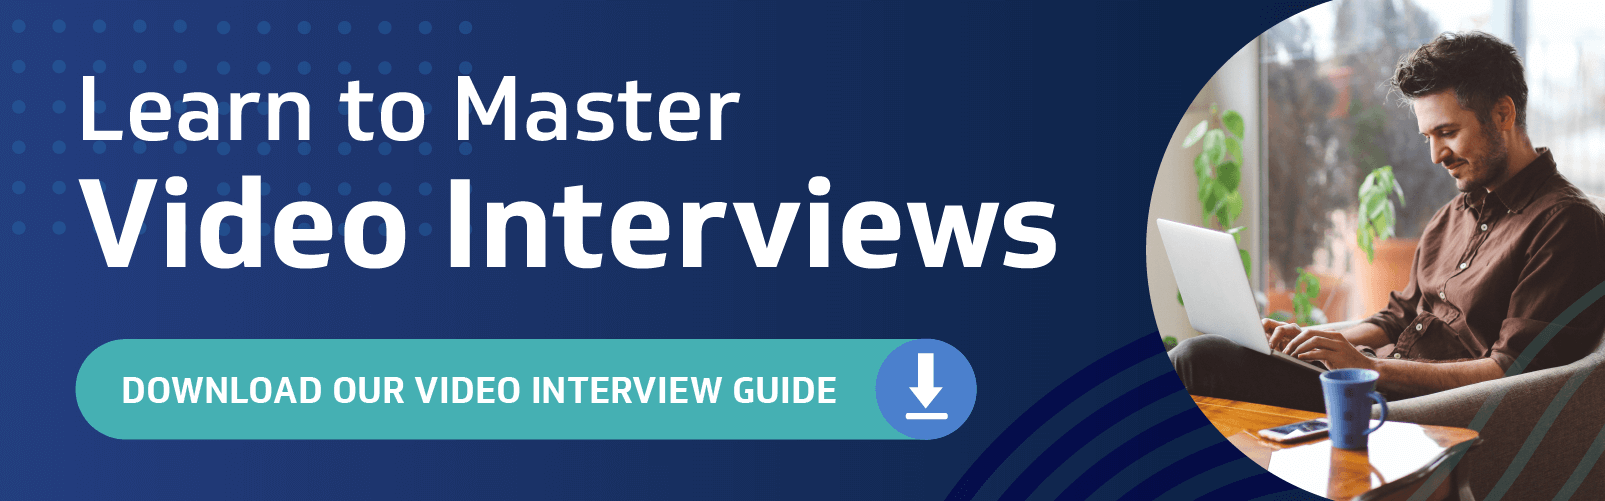 Download Our Video Interview Guide